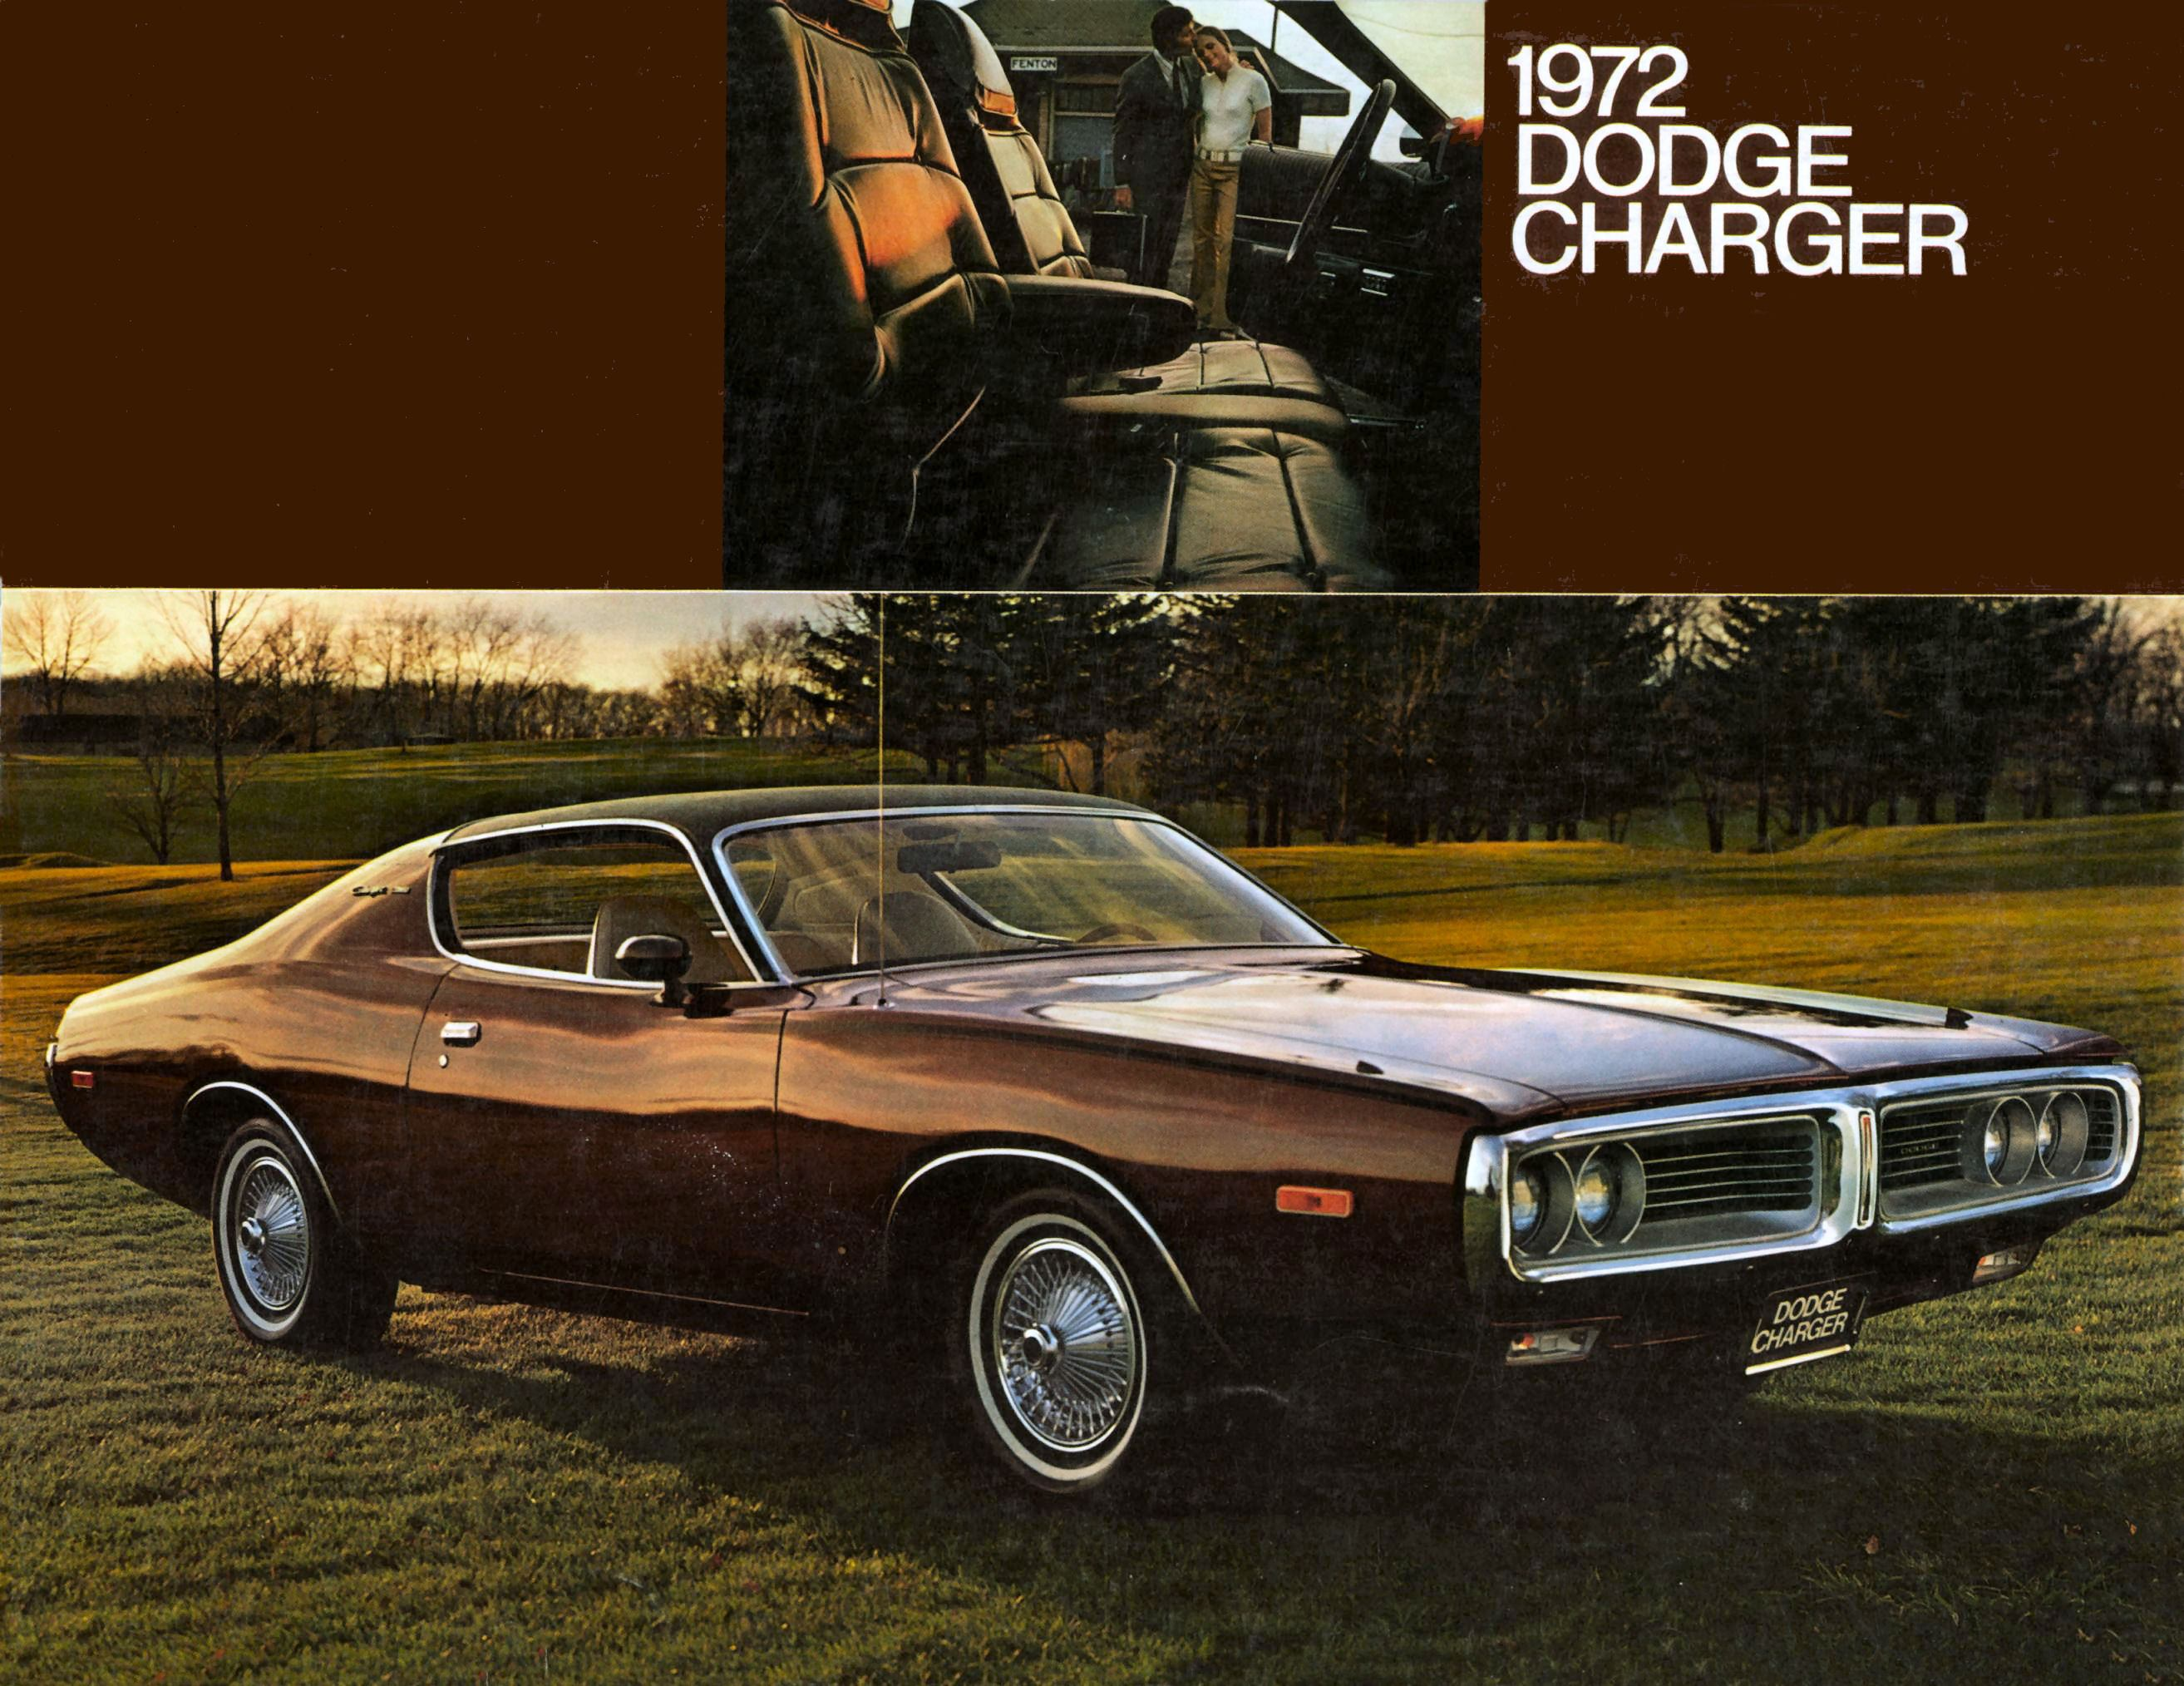 1972 Dodge Charger brochure